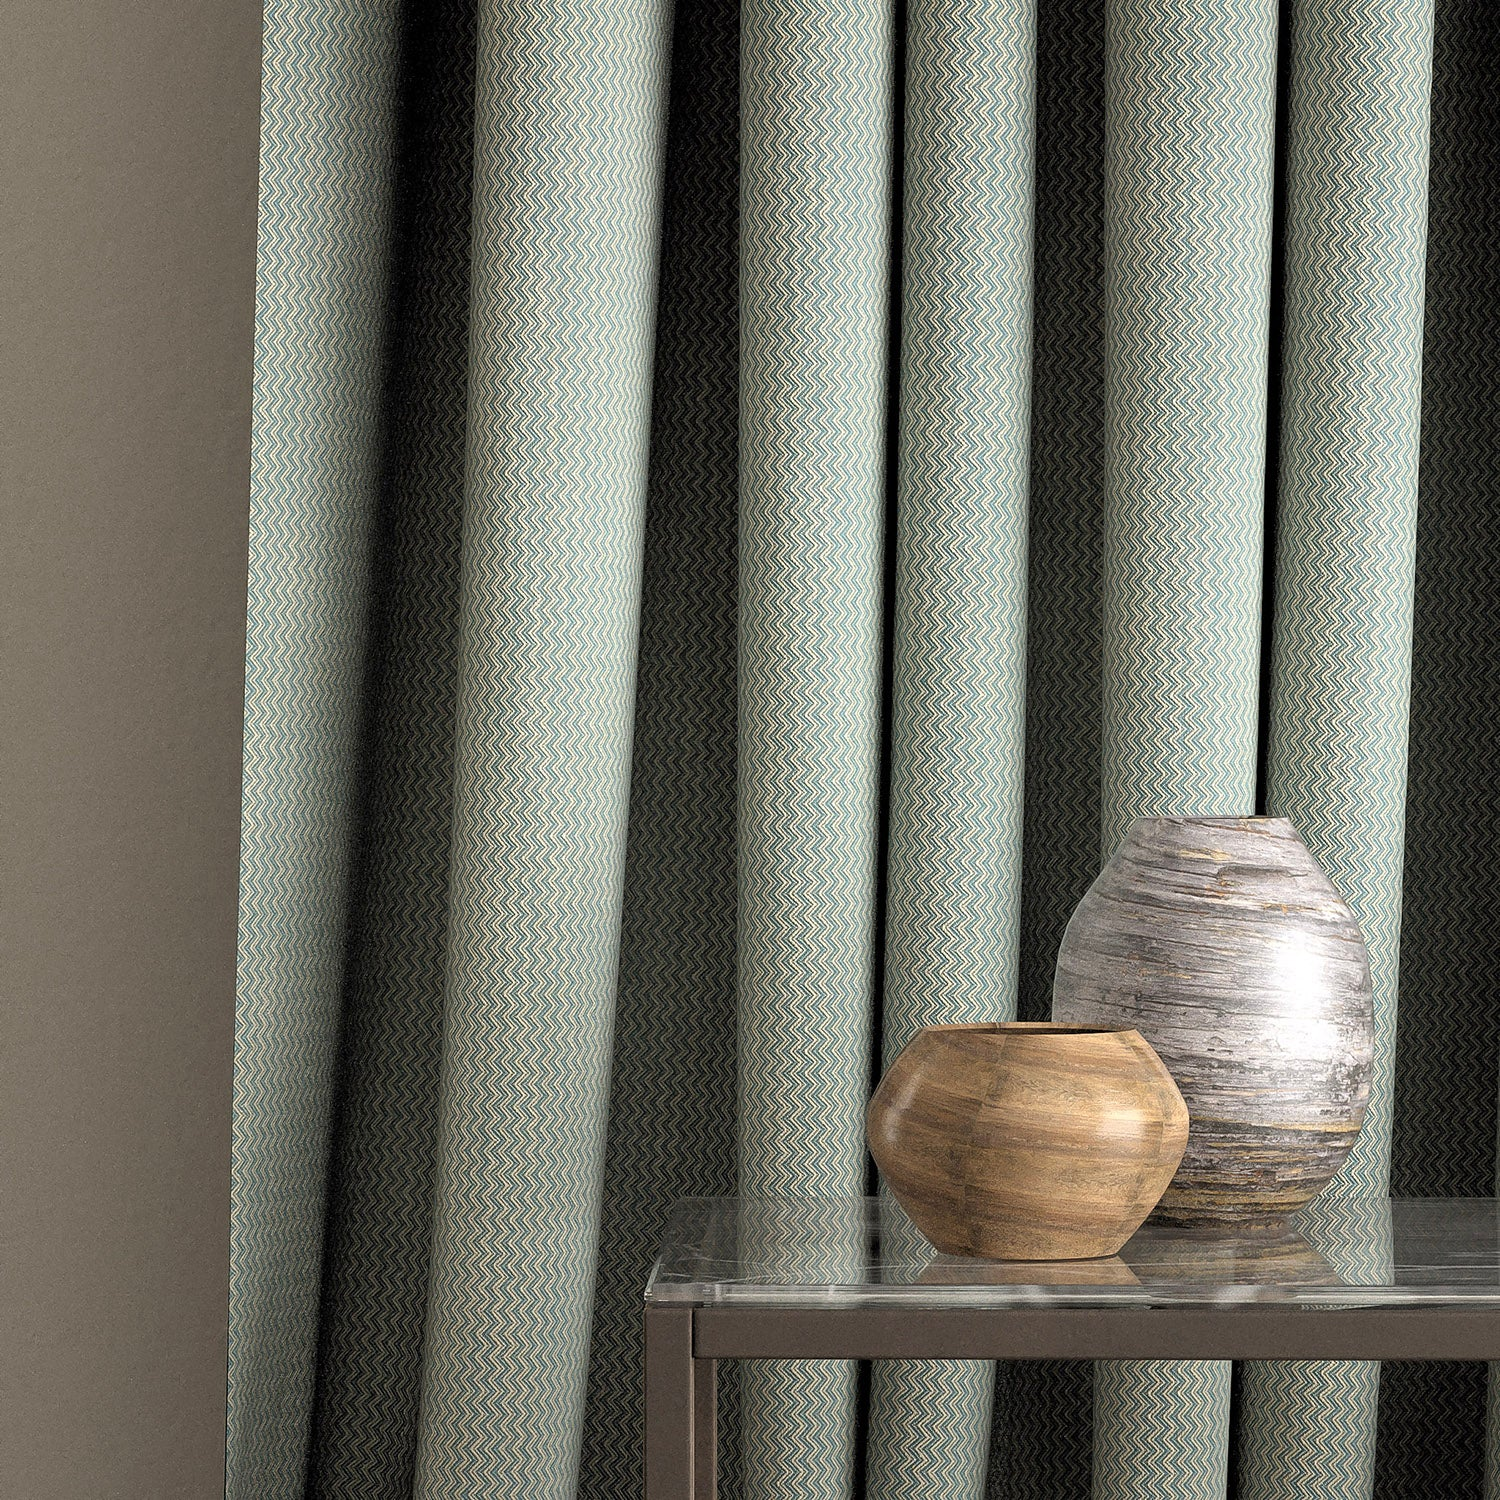 Curtain in a blue zig zag weave fabric with a stain resistant finish